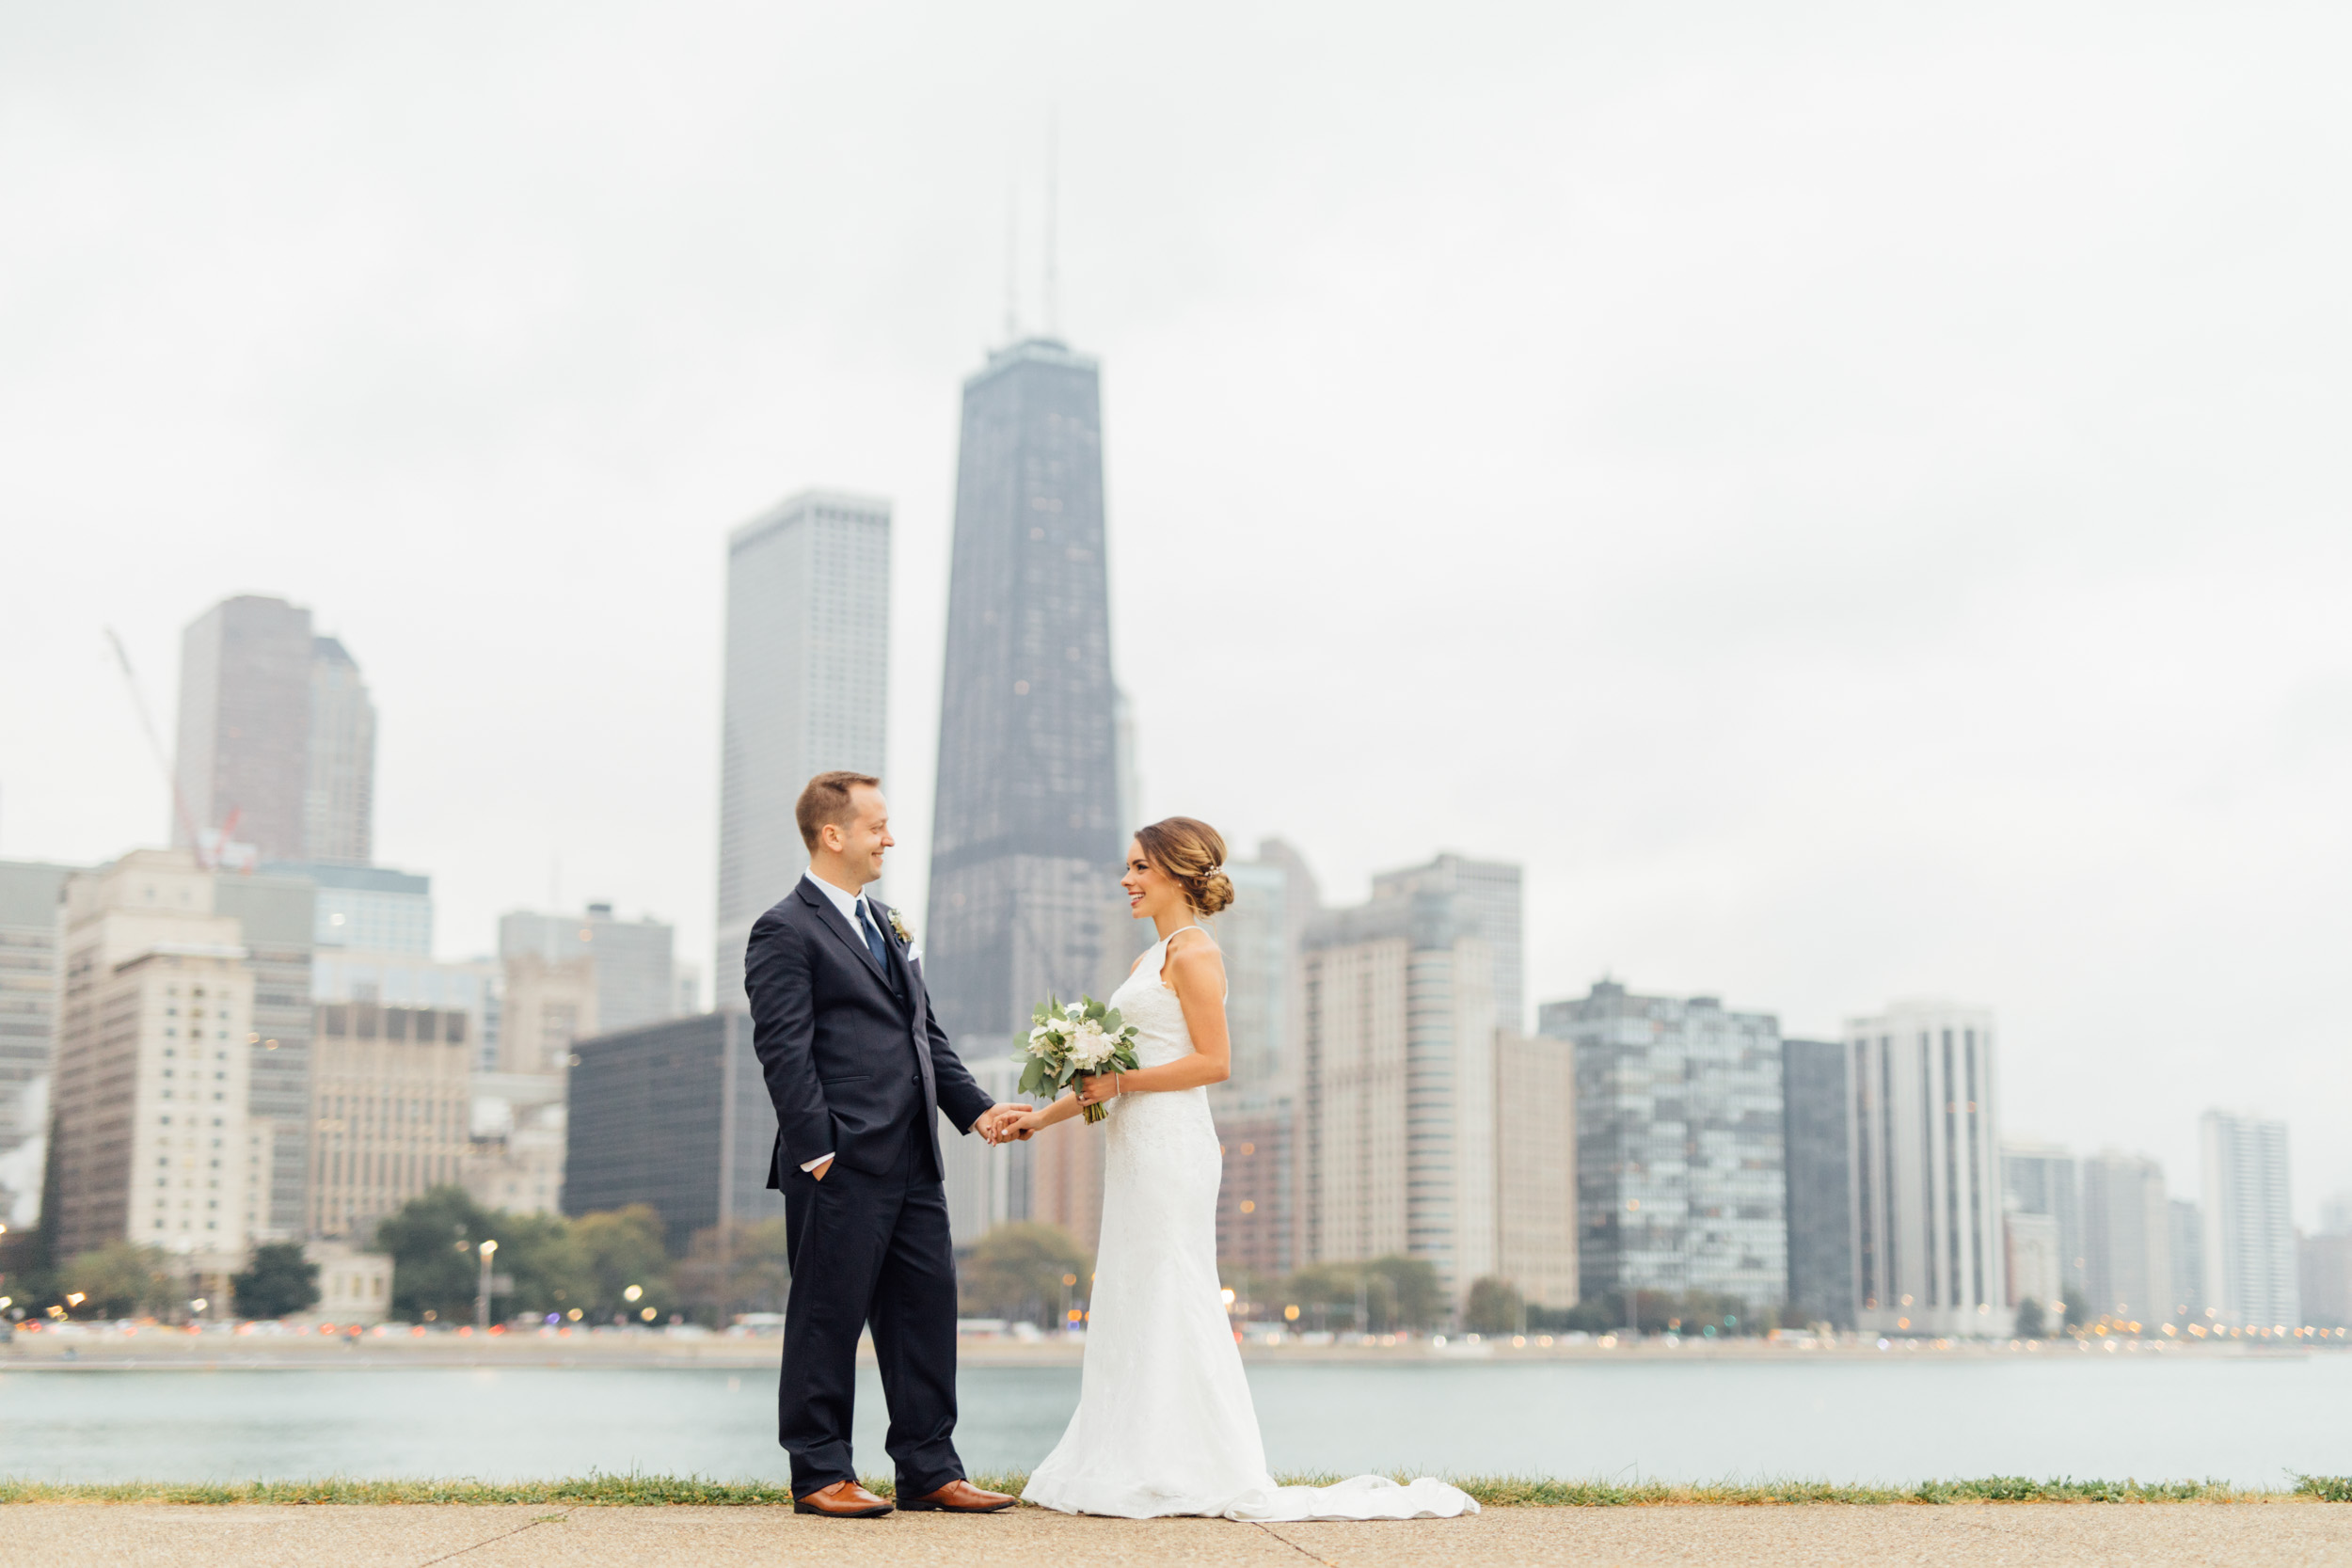 Downtown Chicago Wedding_Polly C Photography 1706172531.jpg